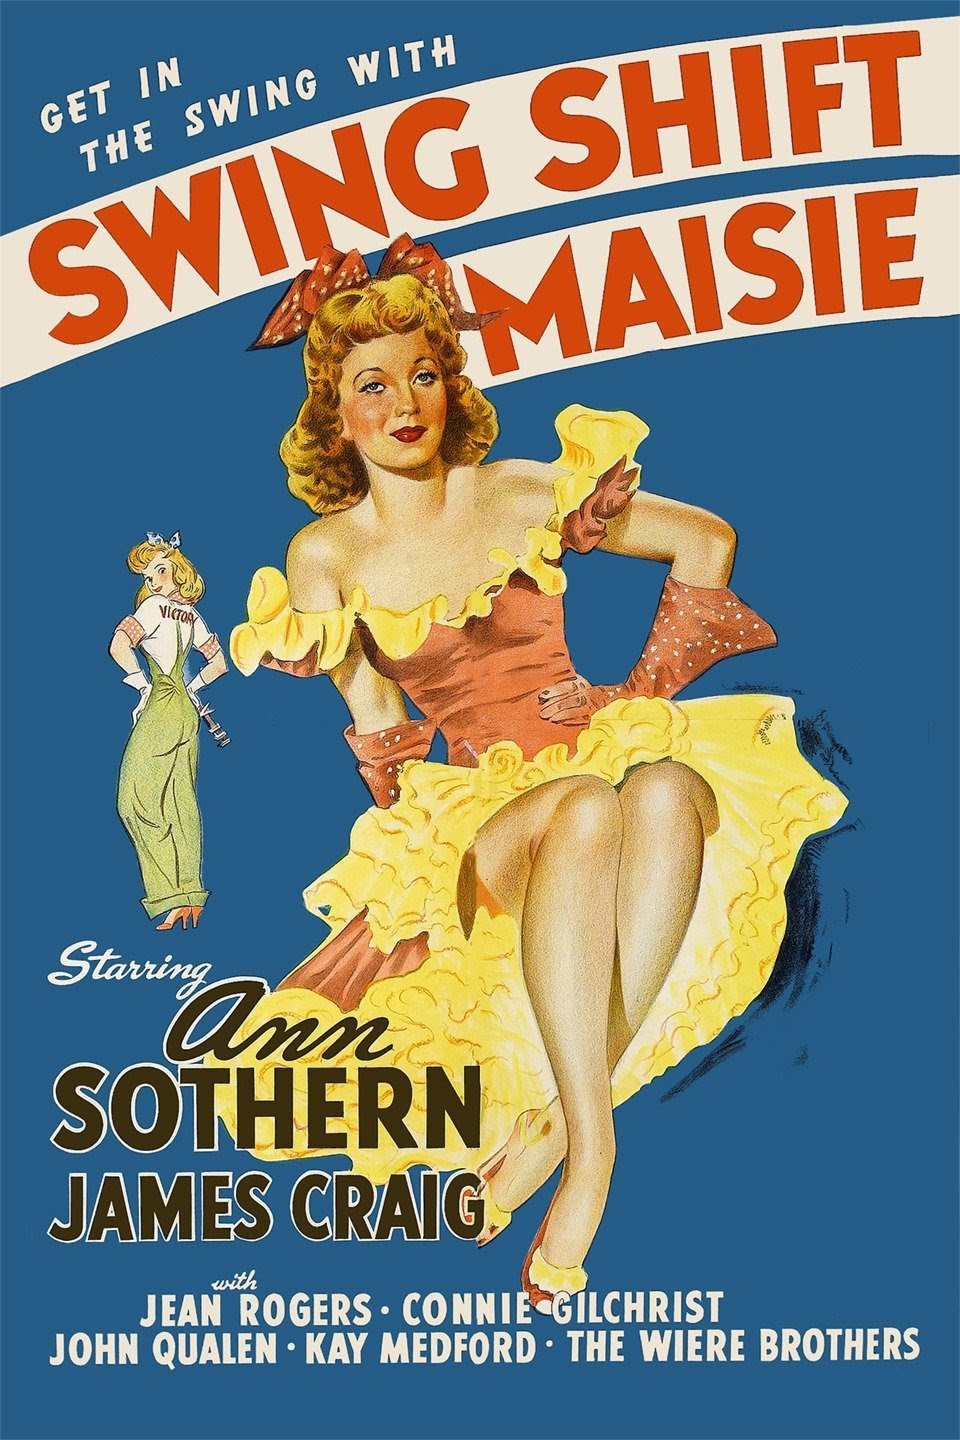 Image result for swing shift maisie 1943